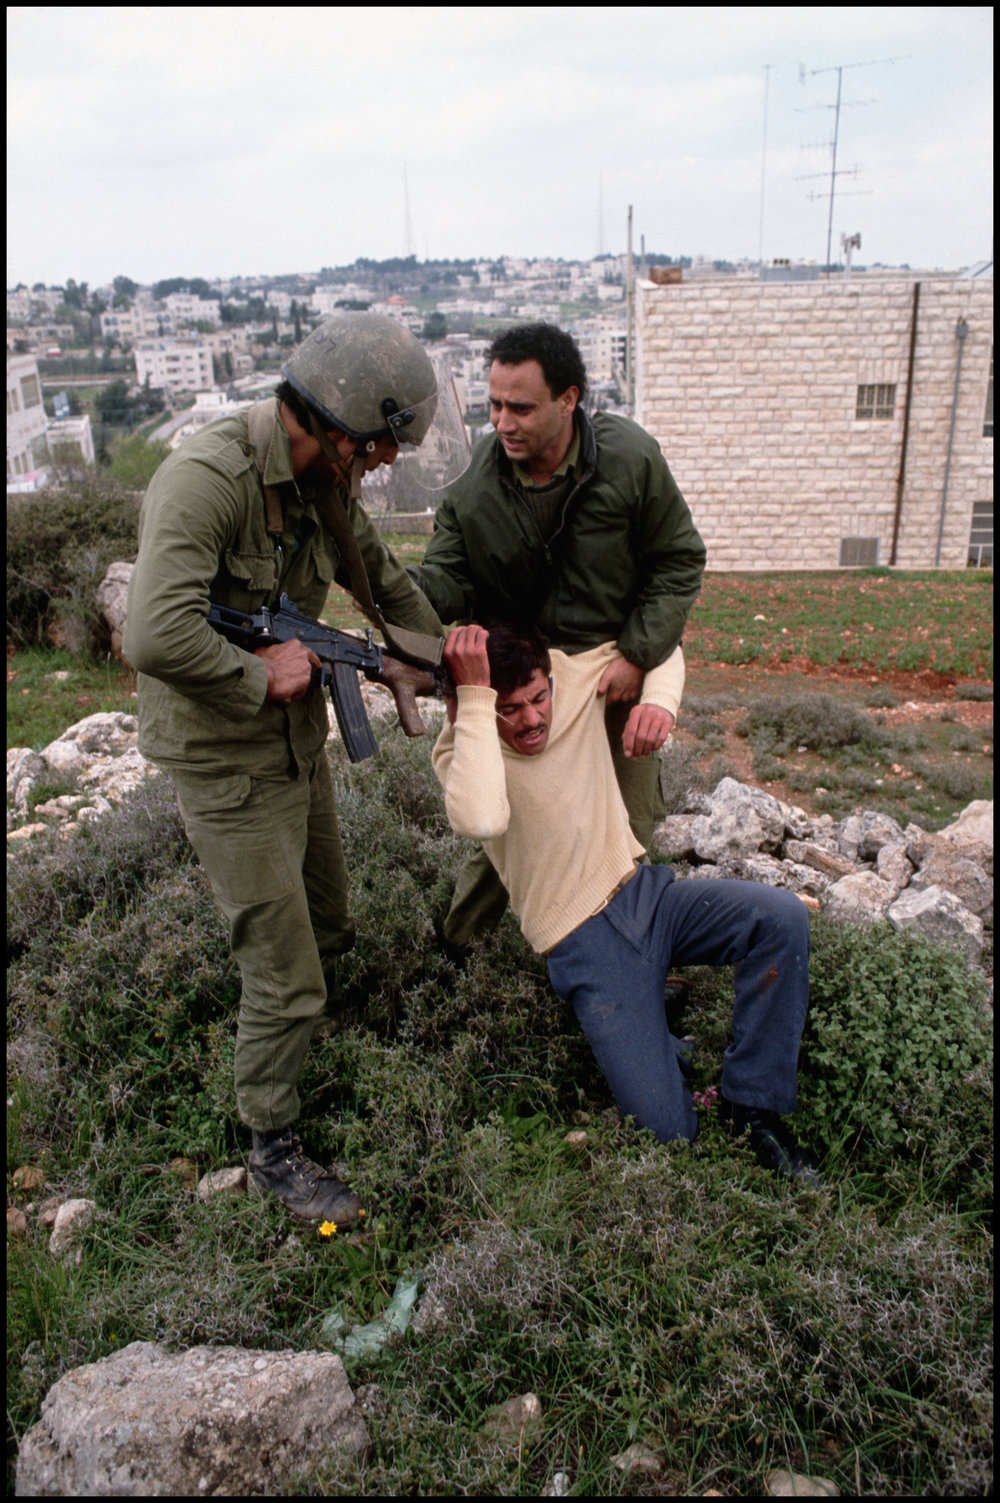 1988, Ramallah, West Bank --- Two Israeli soldiers arrest a Palestinian during the Intafada in Ramallah on the West Bank.